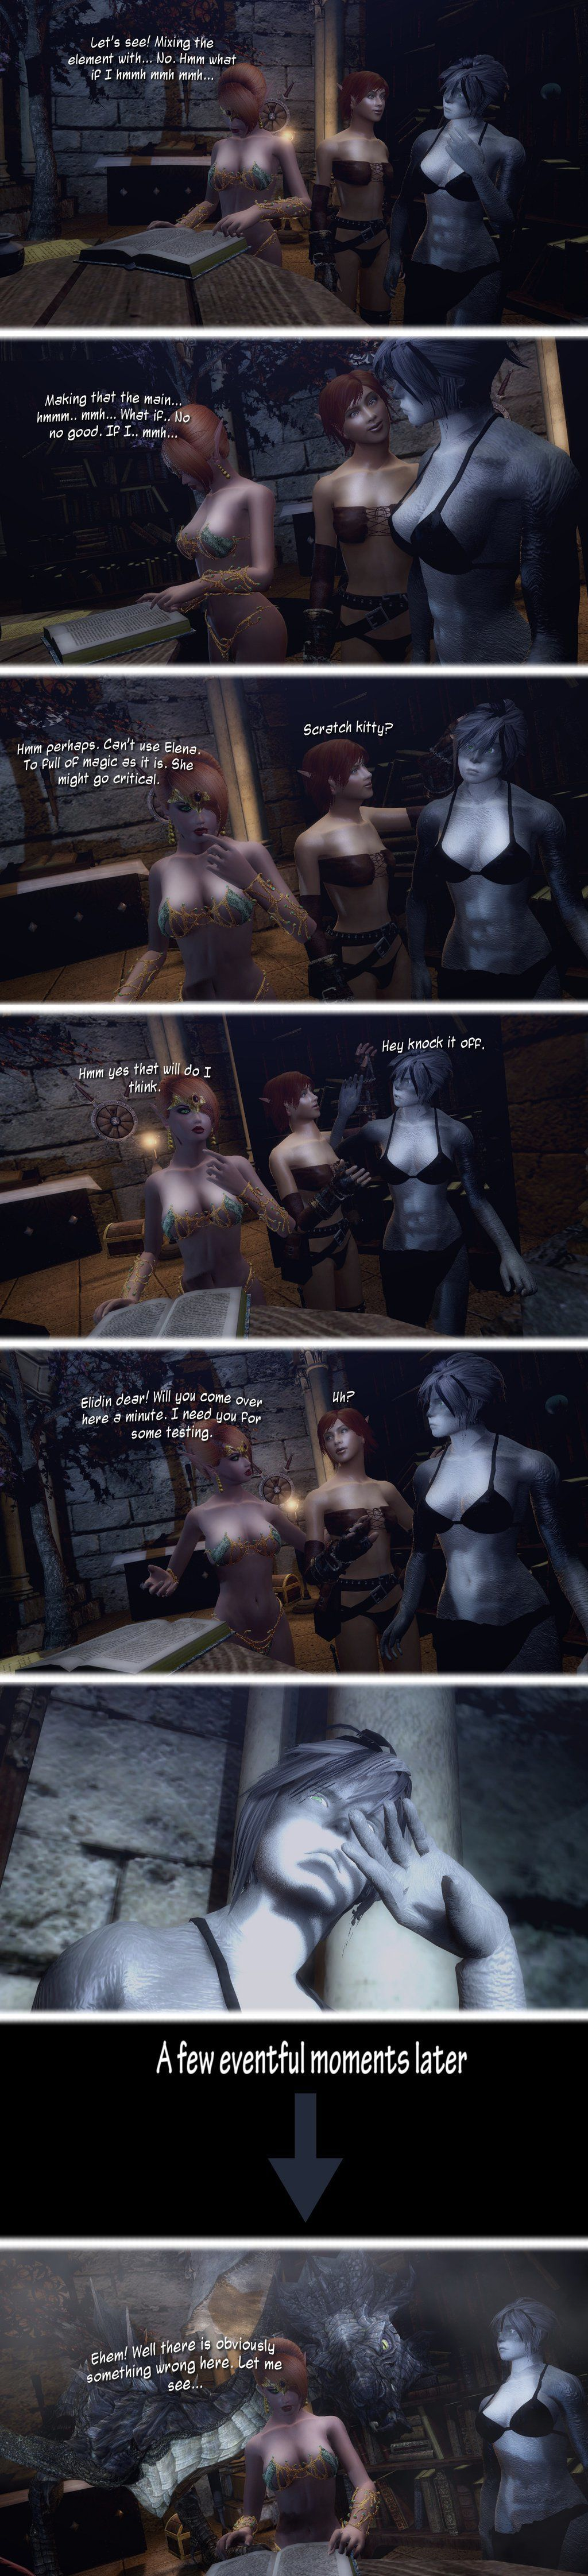 Updated gallery of the works of Rastifan Pt 2 (Comic Shorts) - part 6